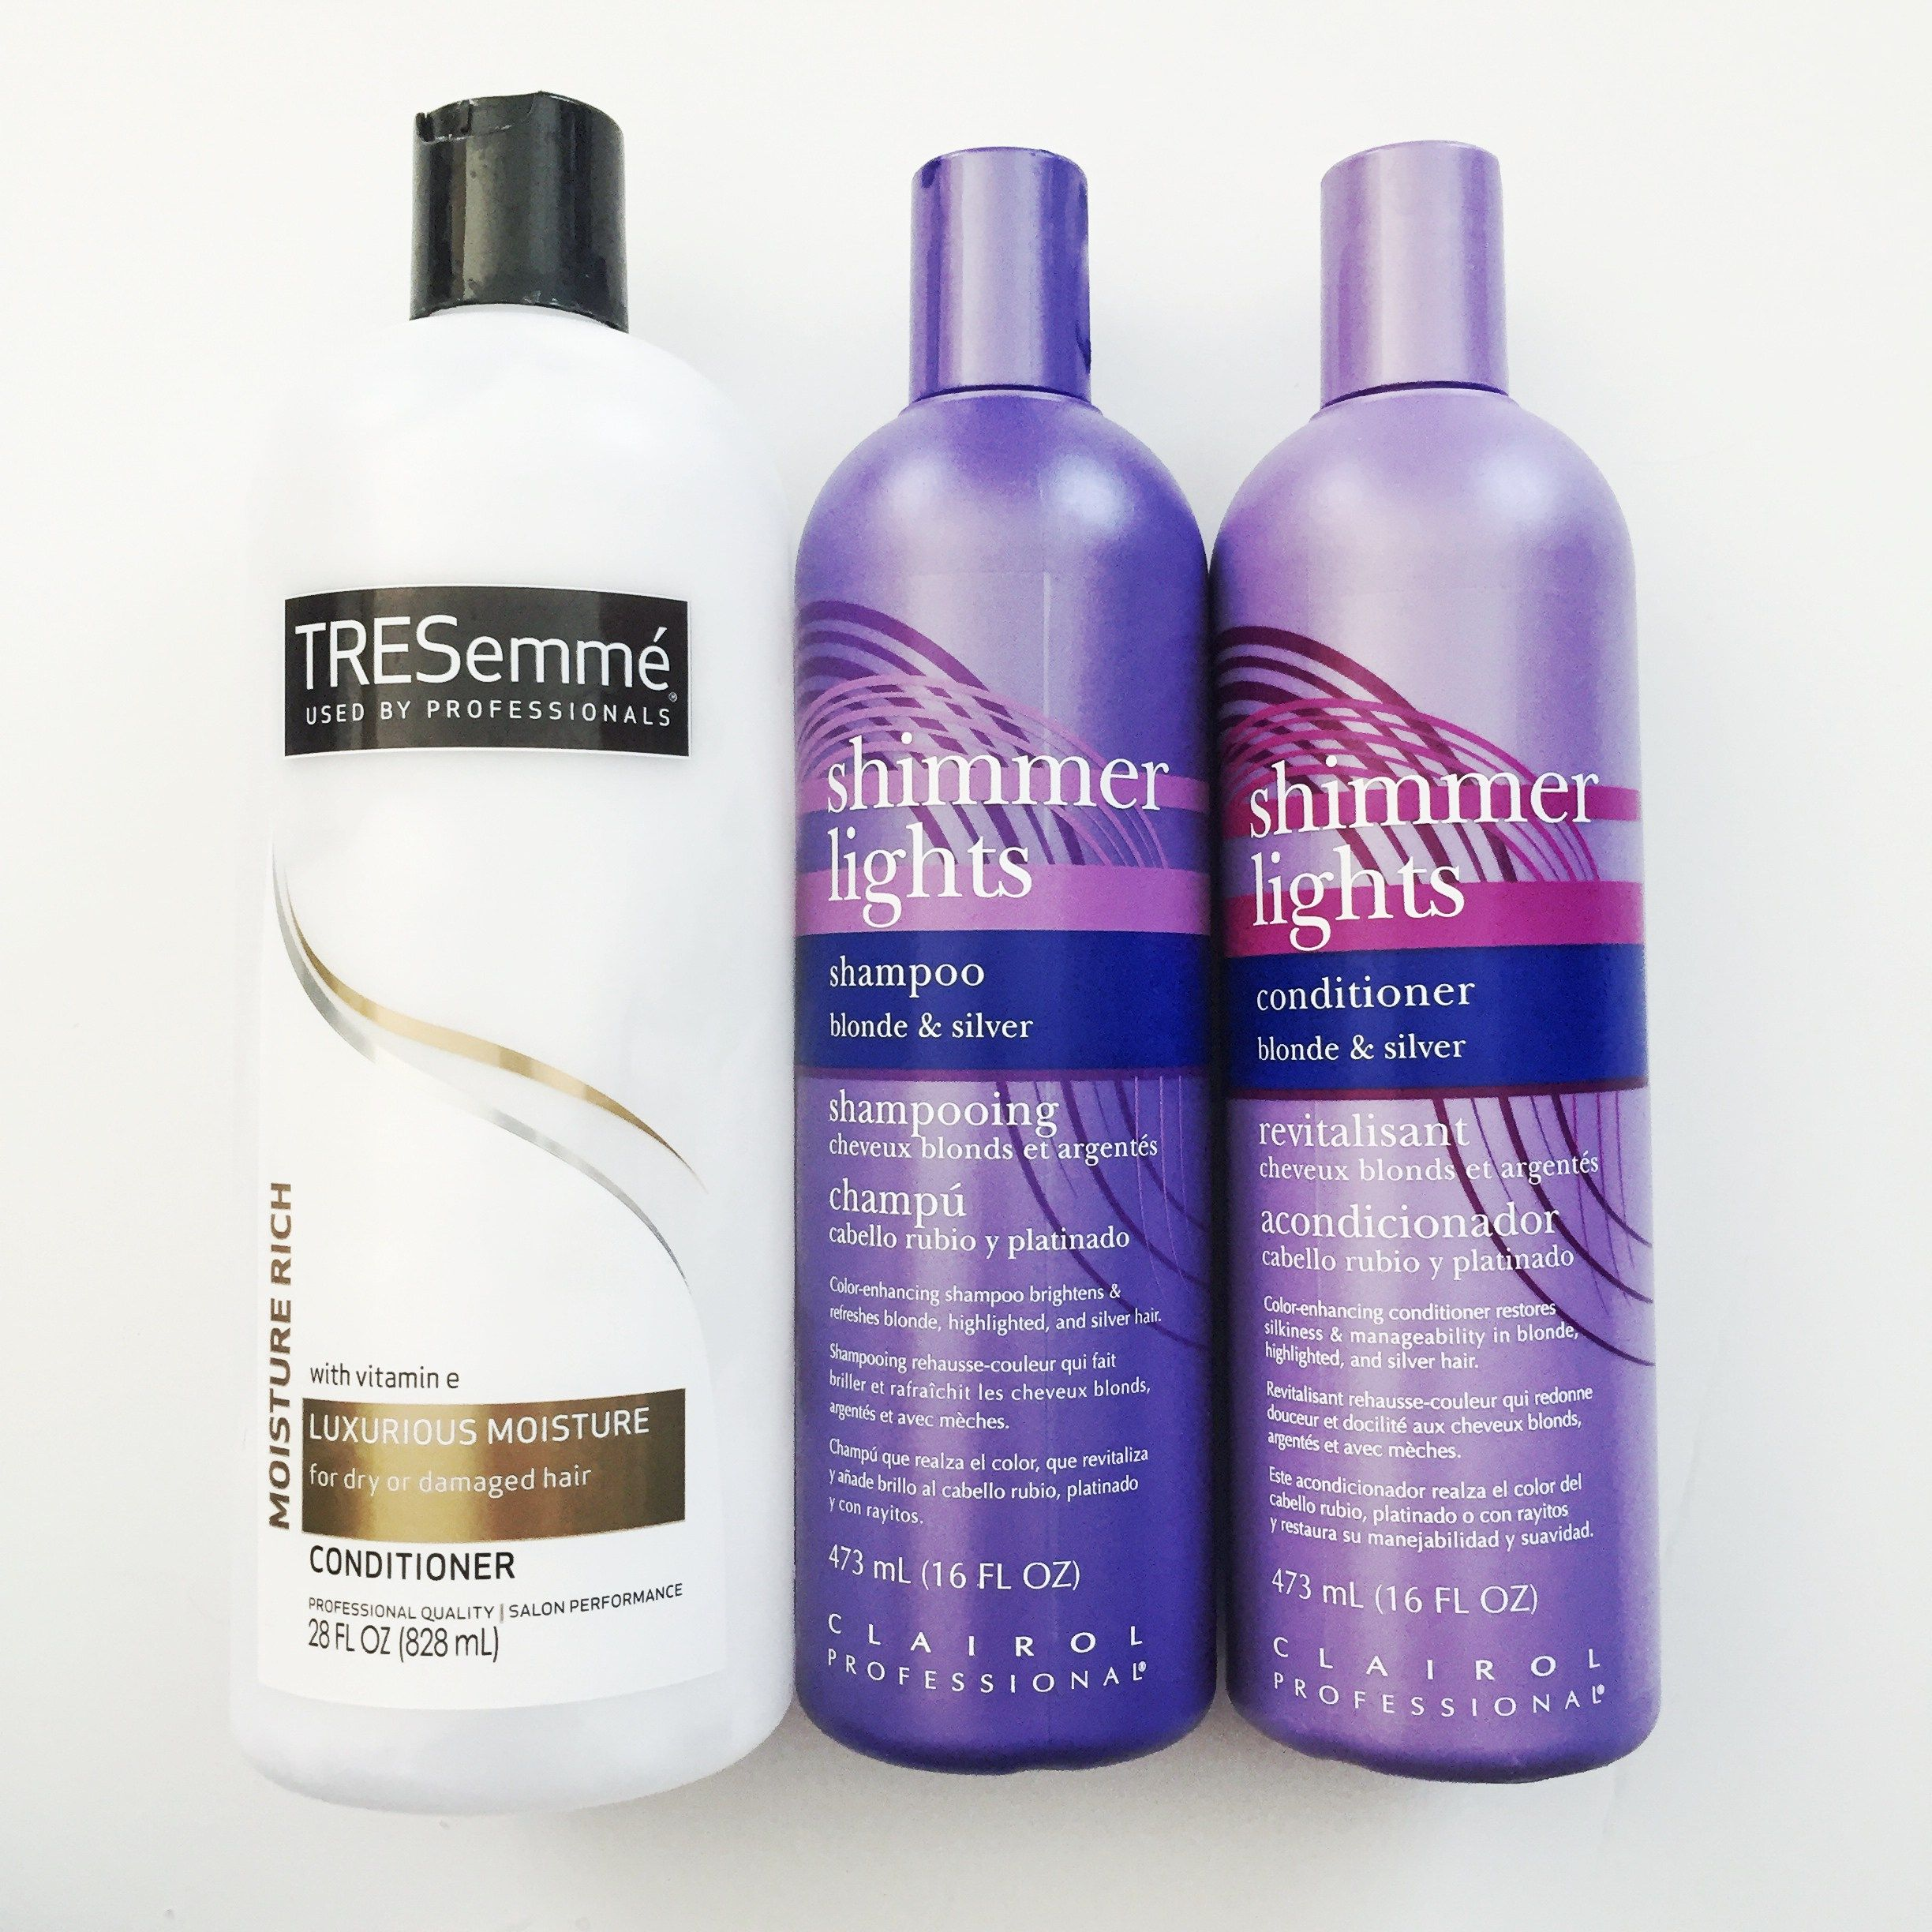 products sbs to shimmer conditioning value generic protection lighting hair shampoo compare color lights care clairol